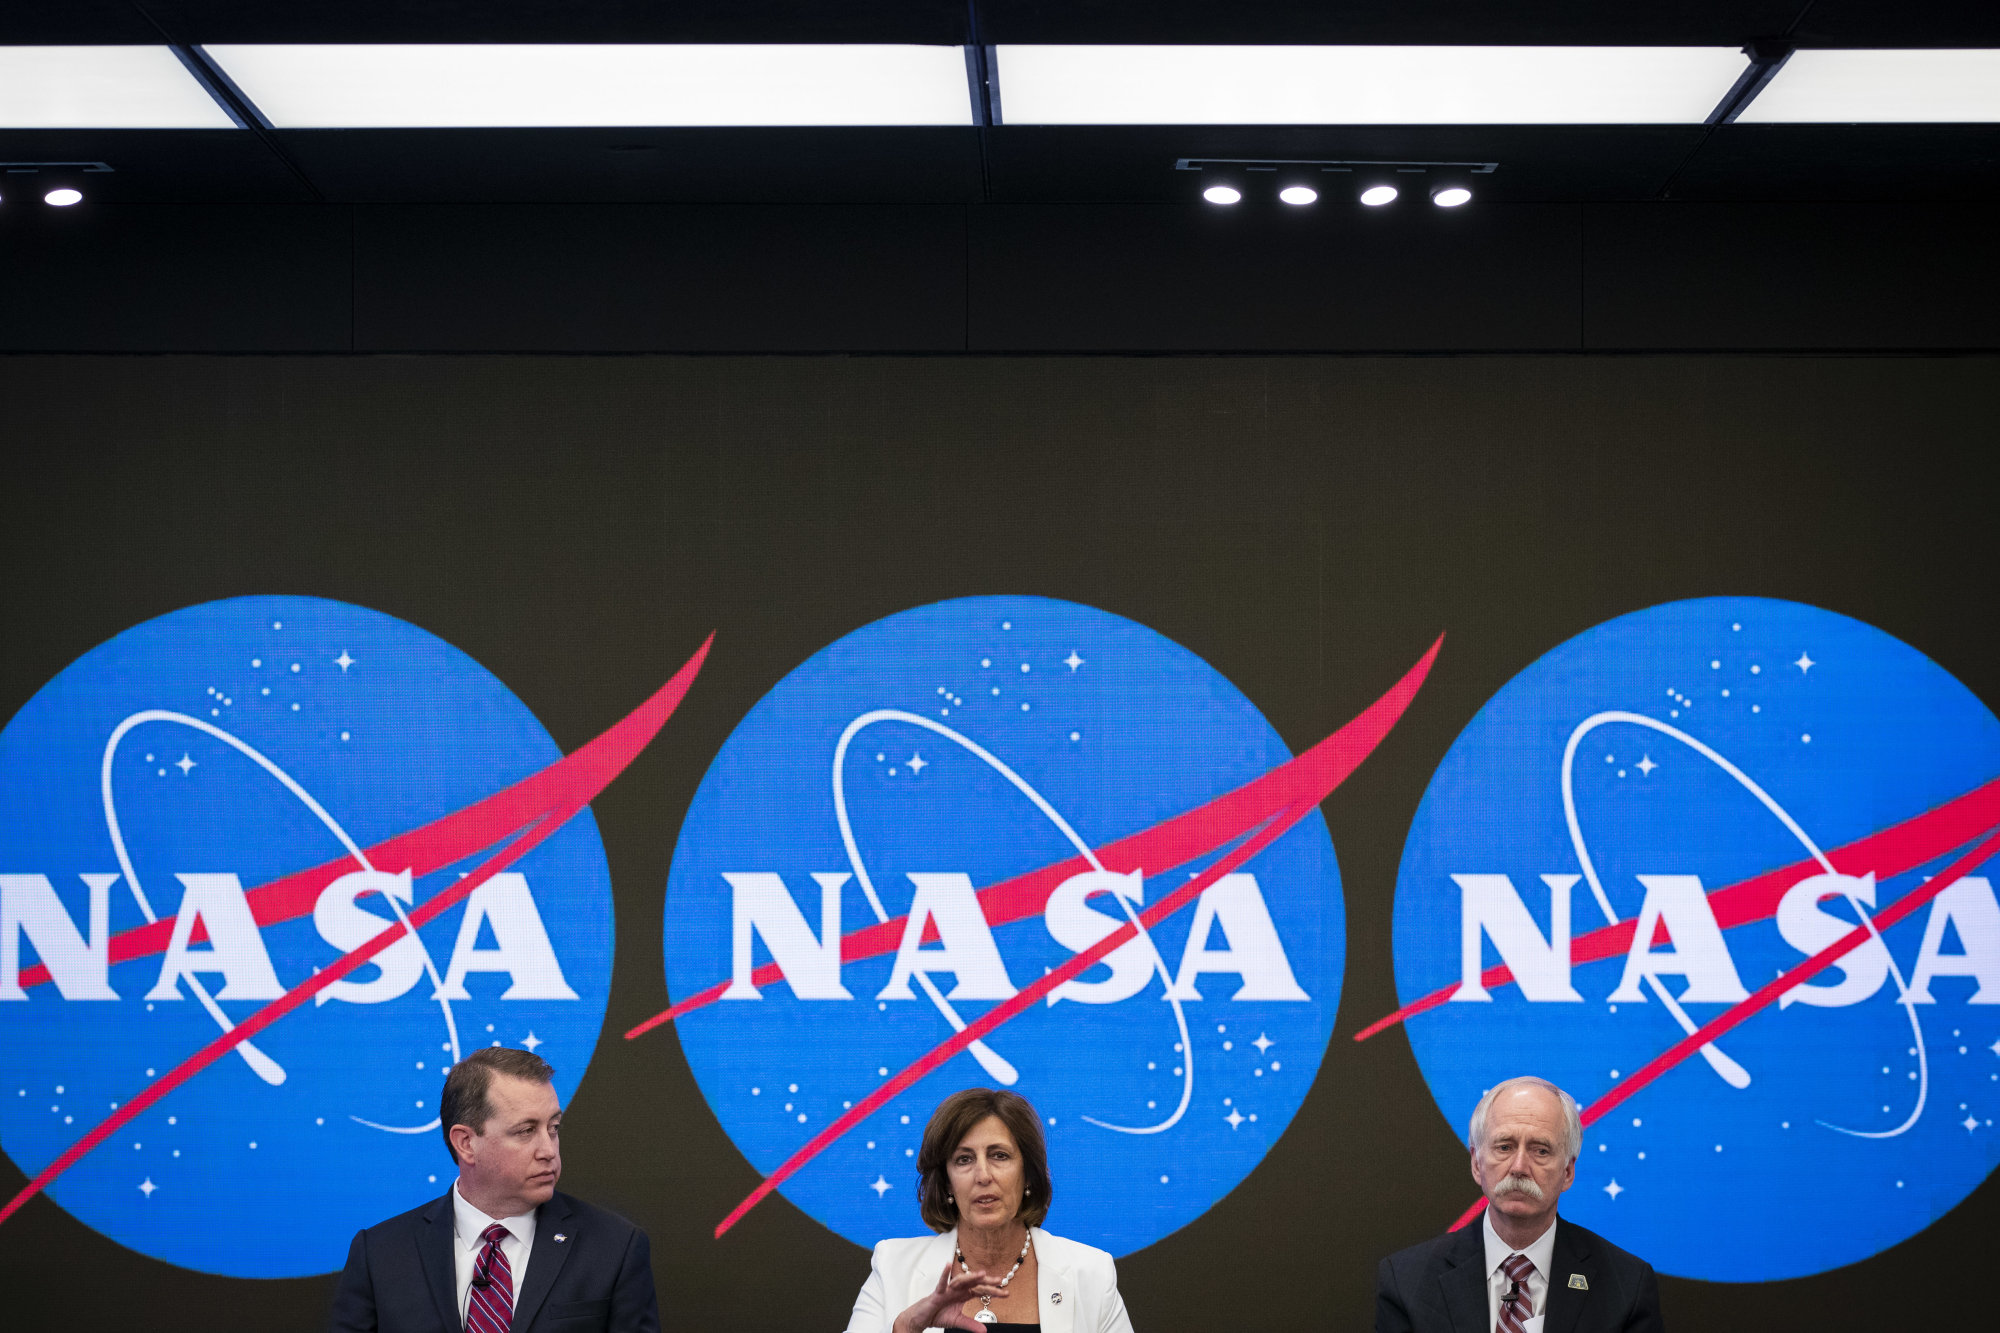 NASA Announces Plans To Expand Commercial Activities At International Space Station